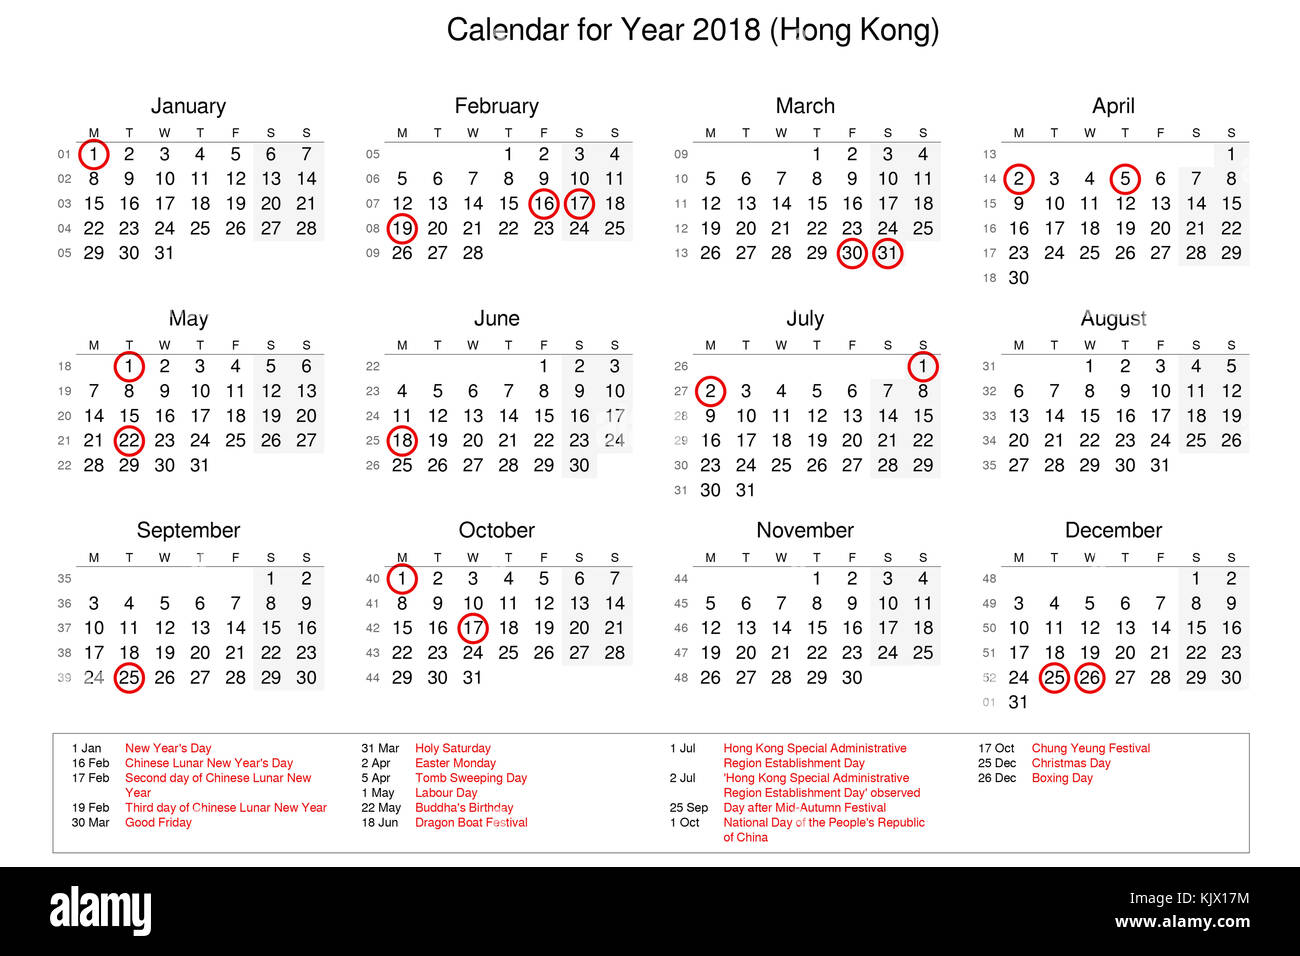 Calendar Of Year 2018 With Public Holidays And Bank Holidays For Hong Stock Photo Alamy